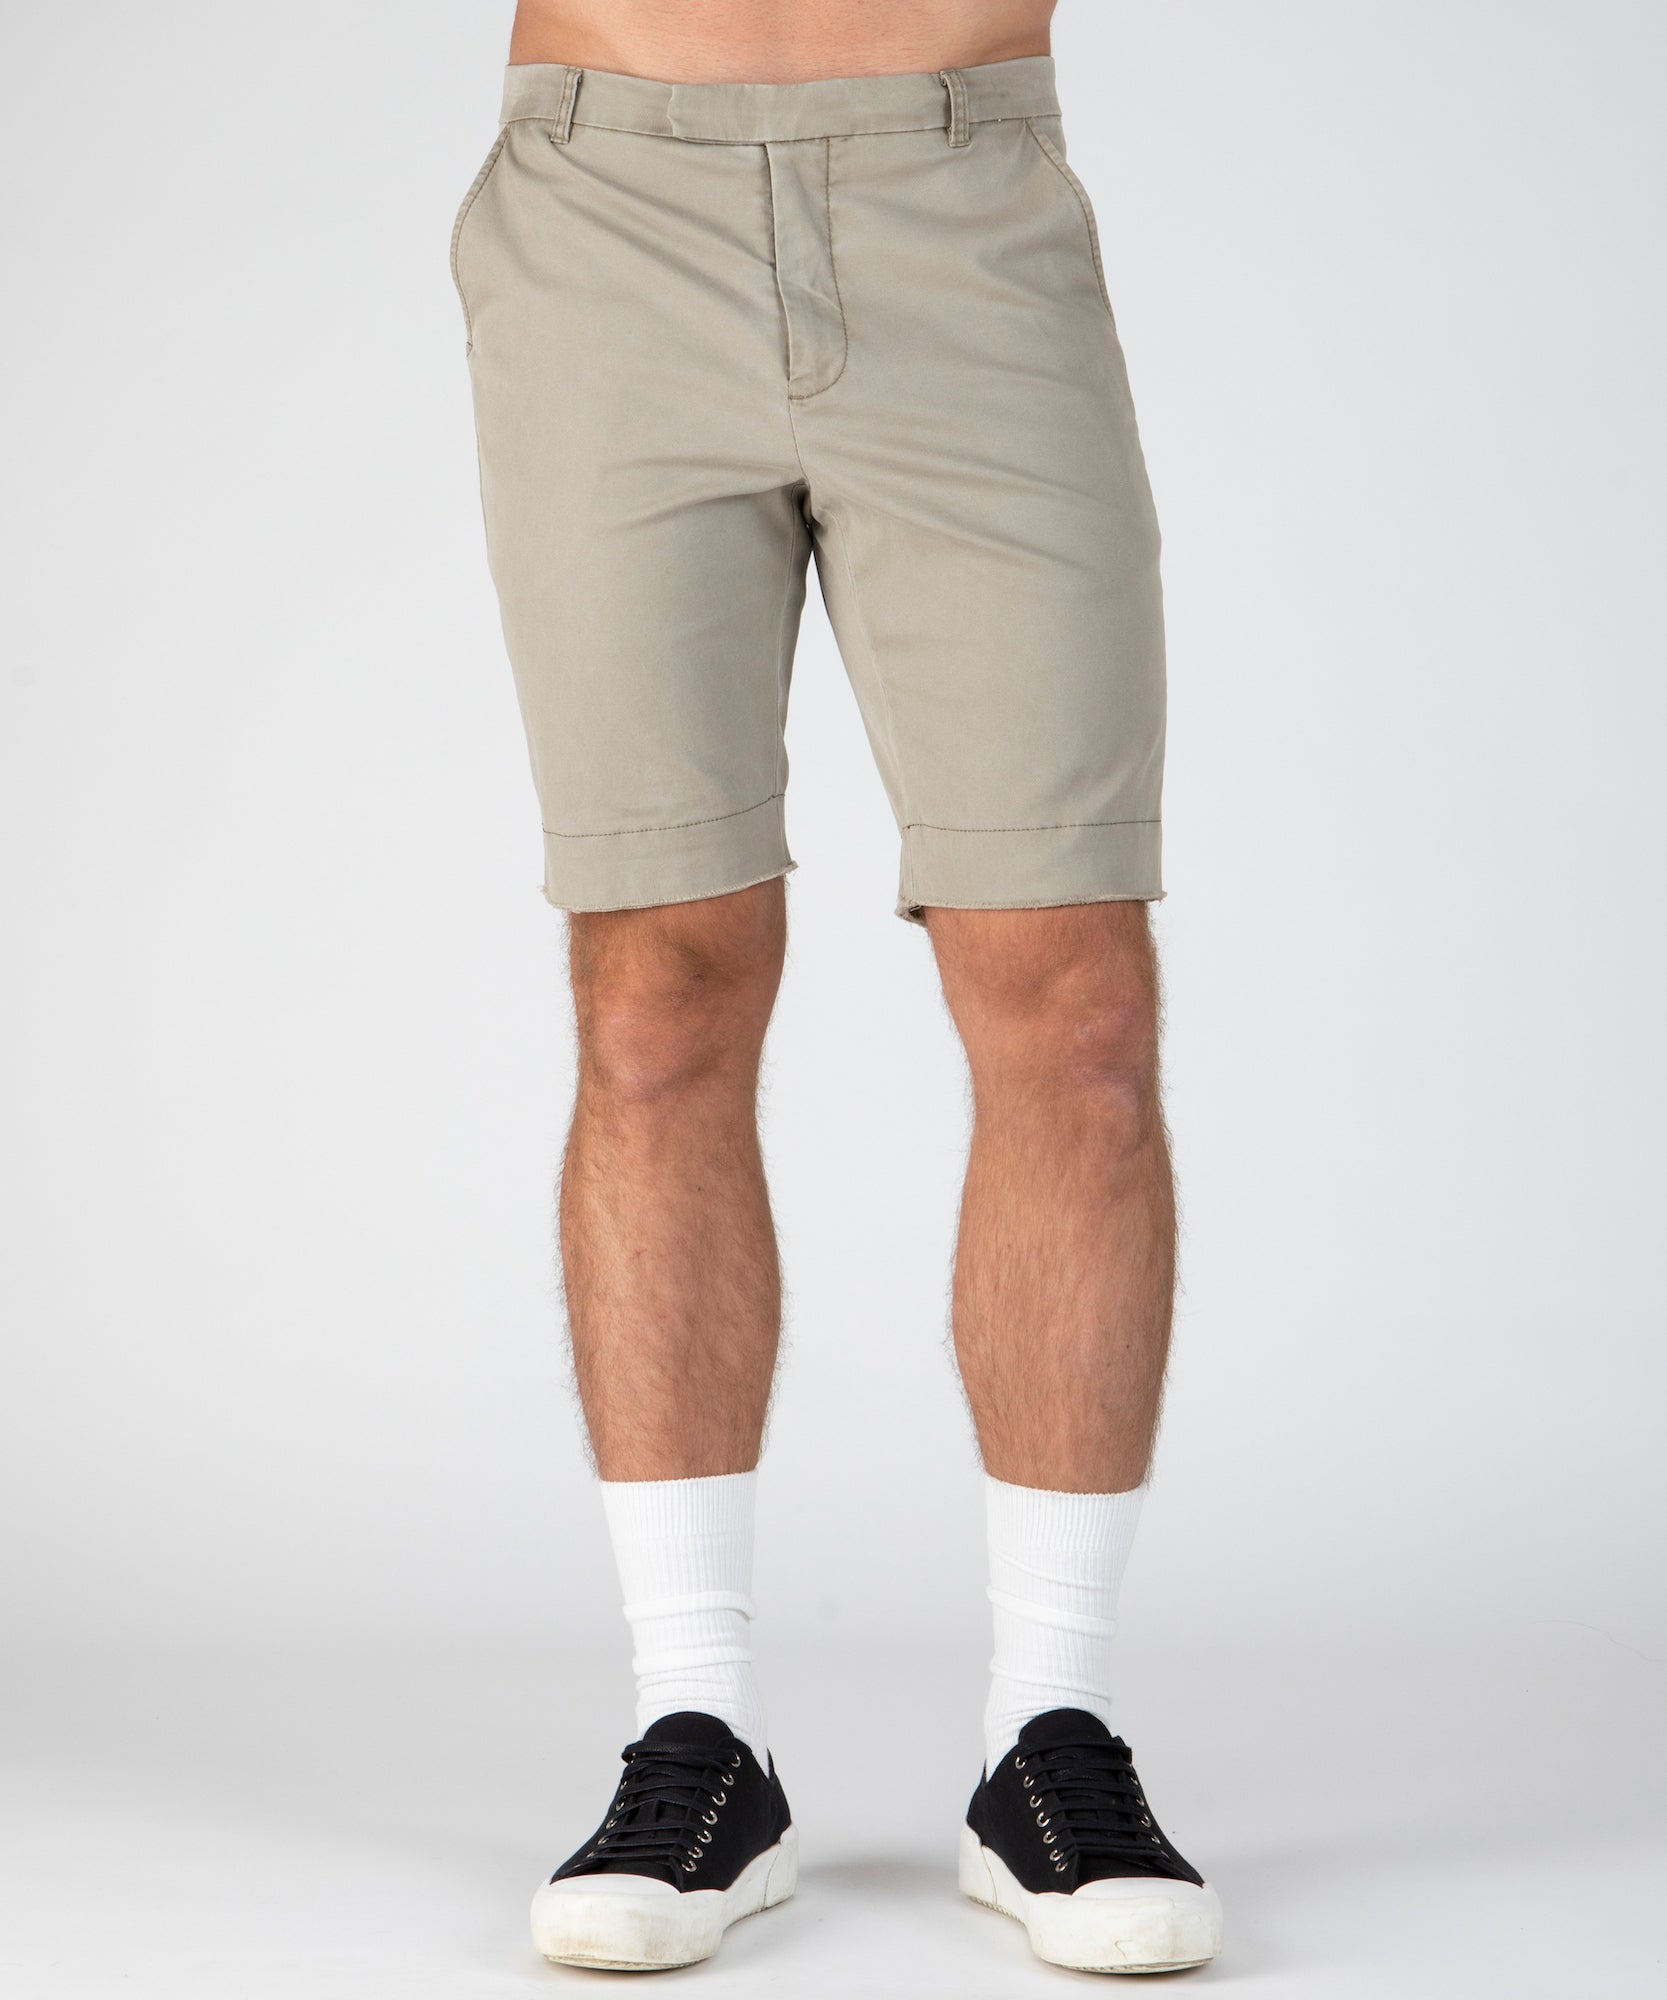 Faded Sage Stretch Cotton Garment Wash Shorts - Men's Luxe Shorts by ATM Anthony Thomas Melillo